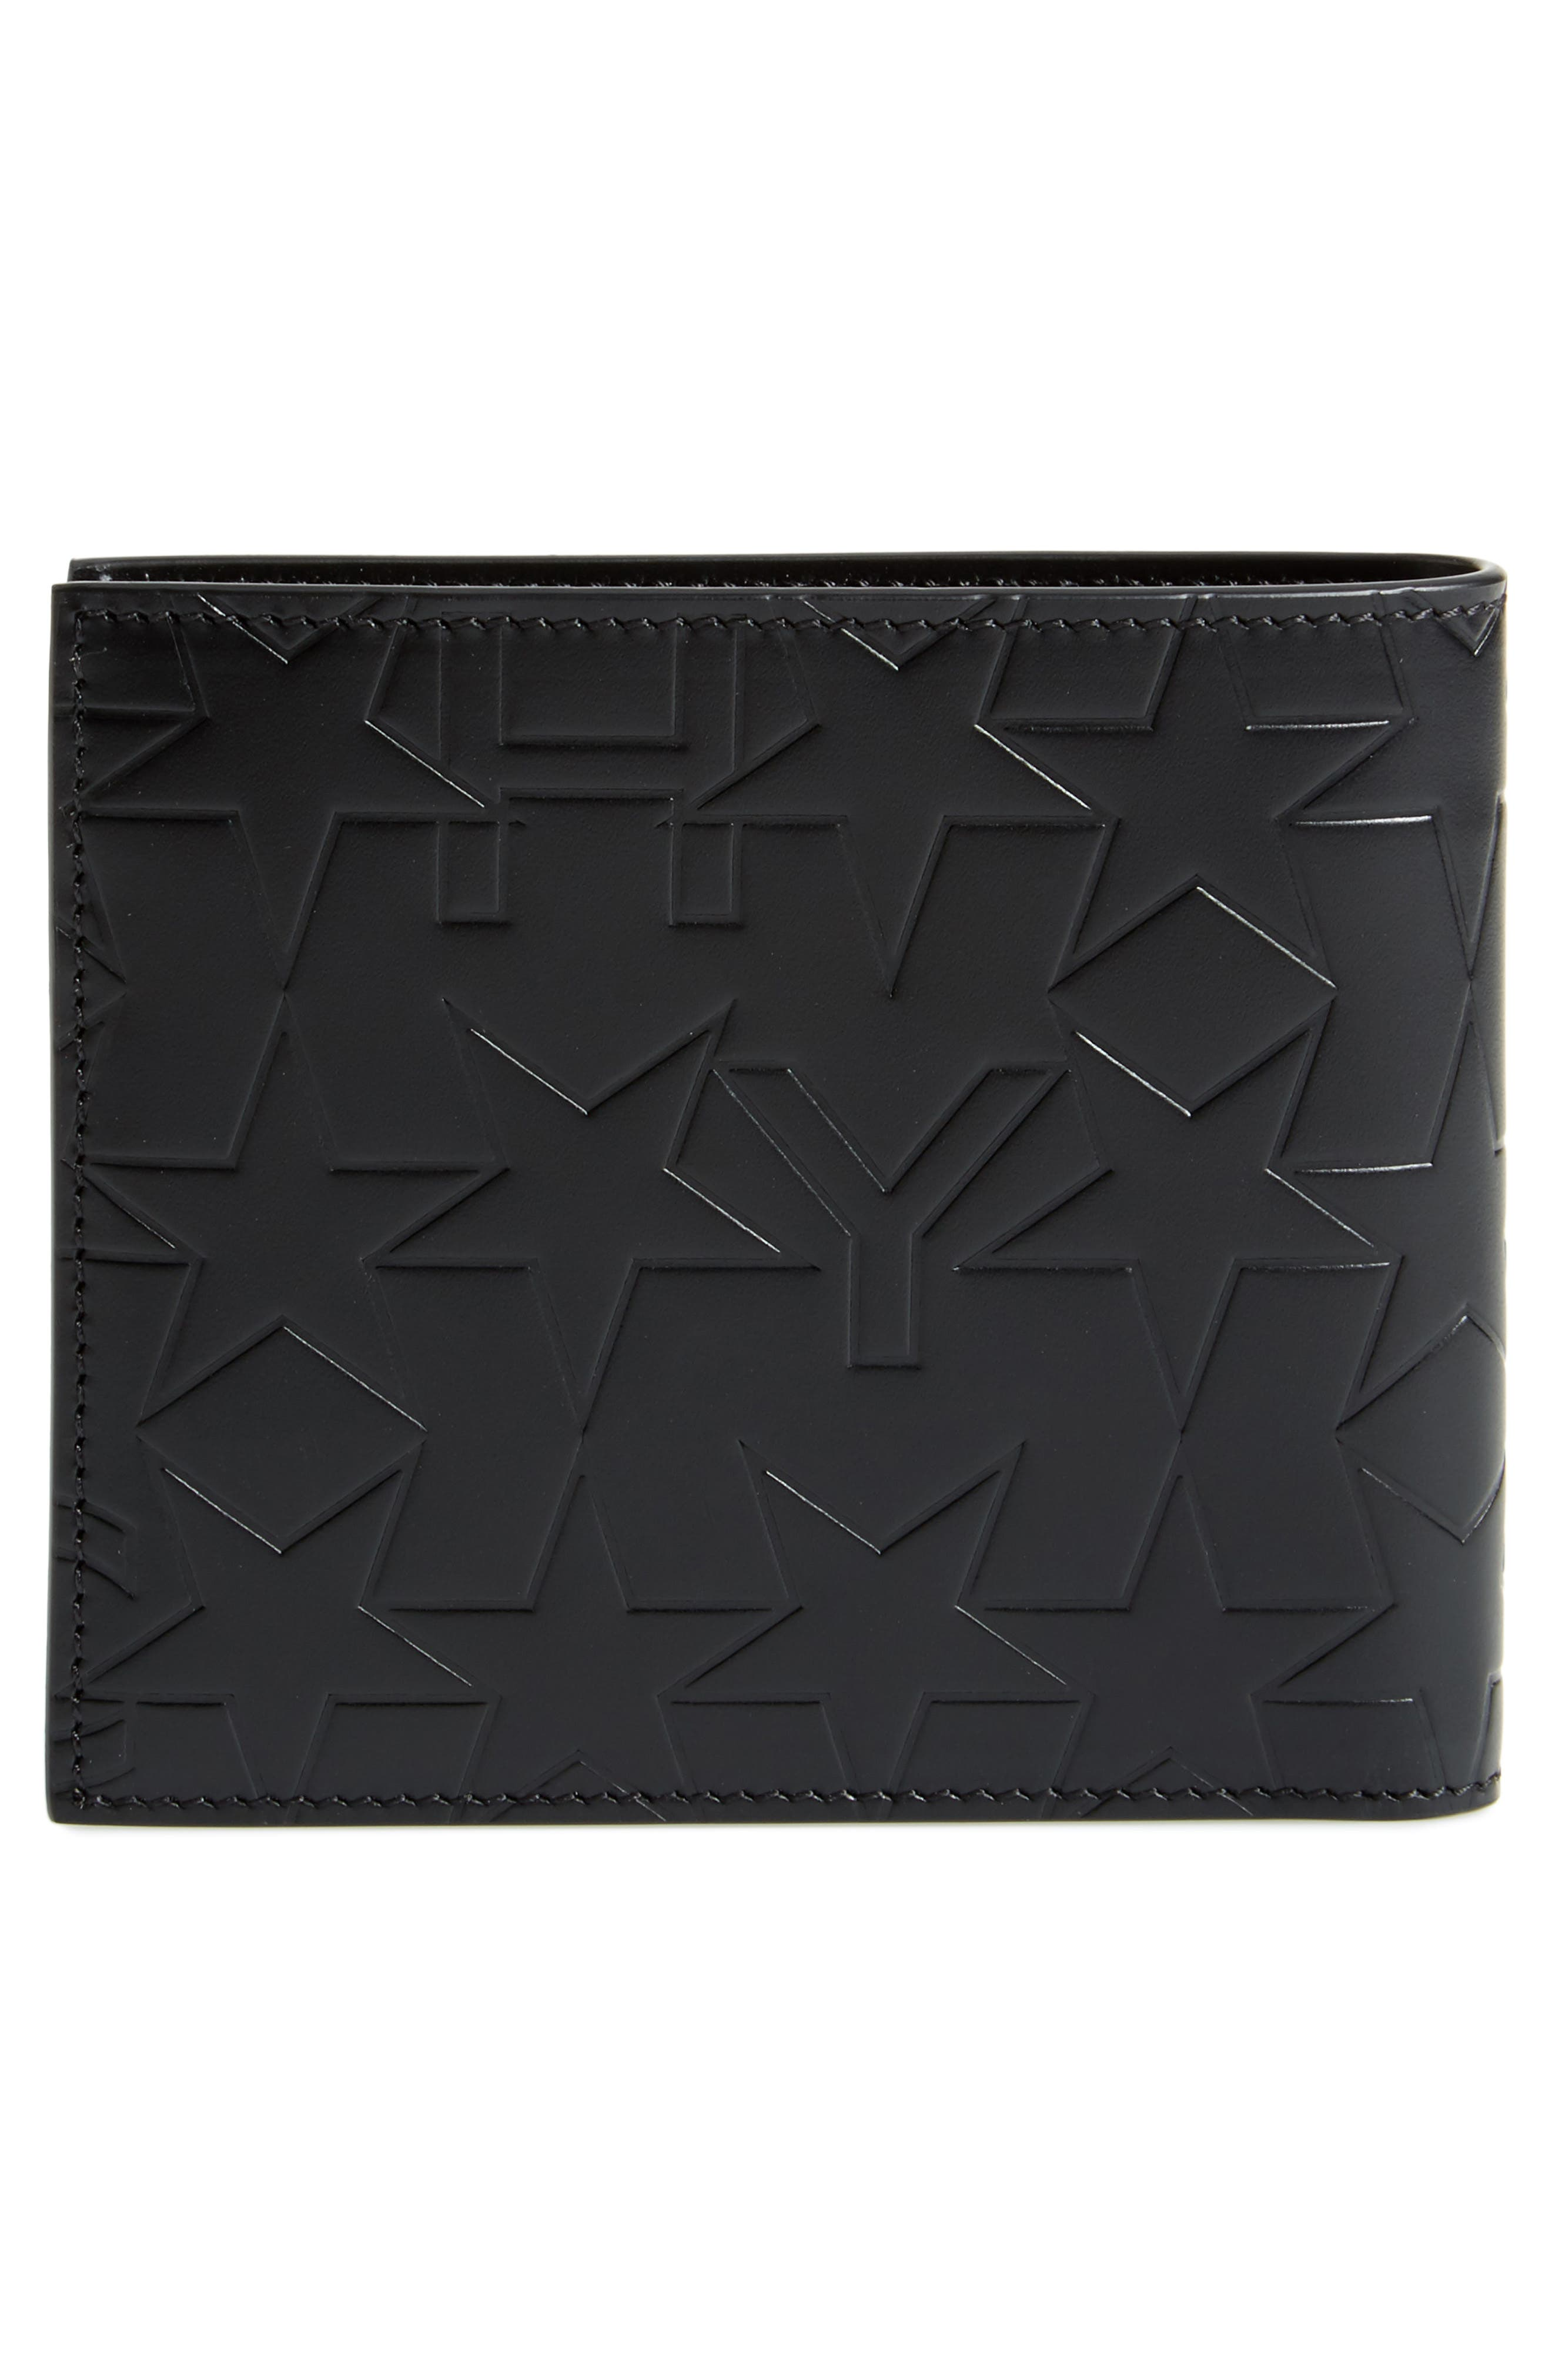 Leather Billfold Wallet,                             Alternate thumbnail 3, color,                             001